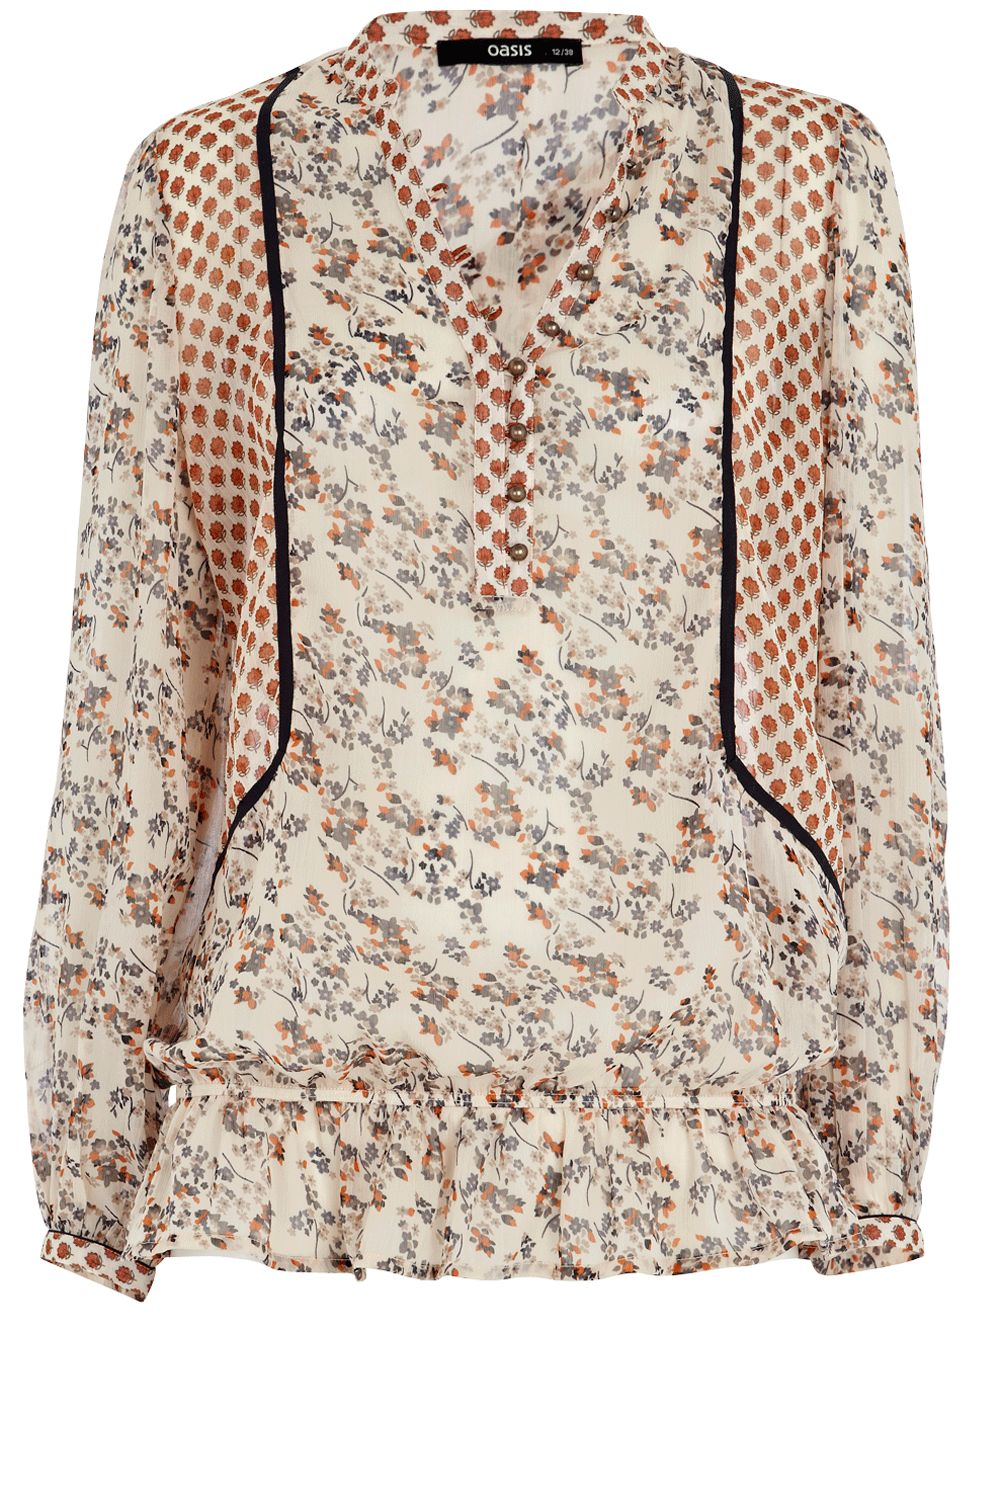 Oasis Patch print folk blouse - Multi-Coloured 10,10 product image